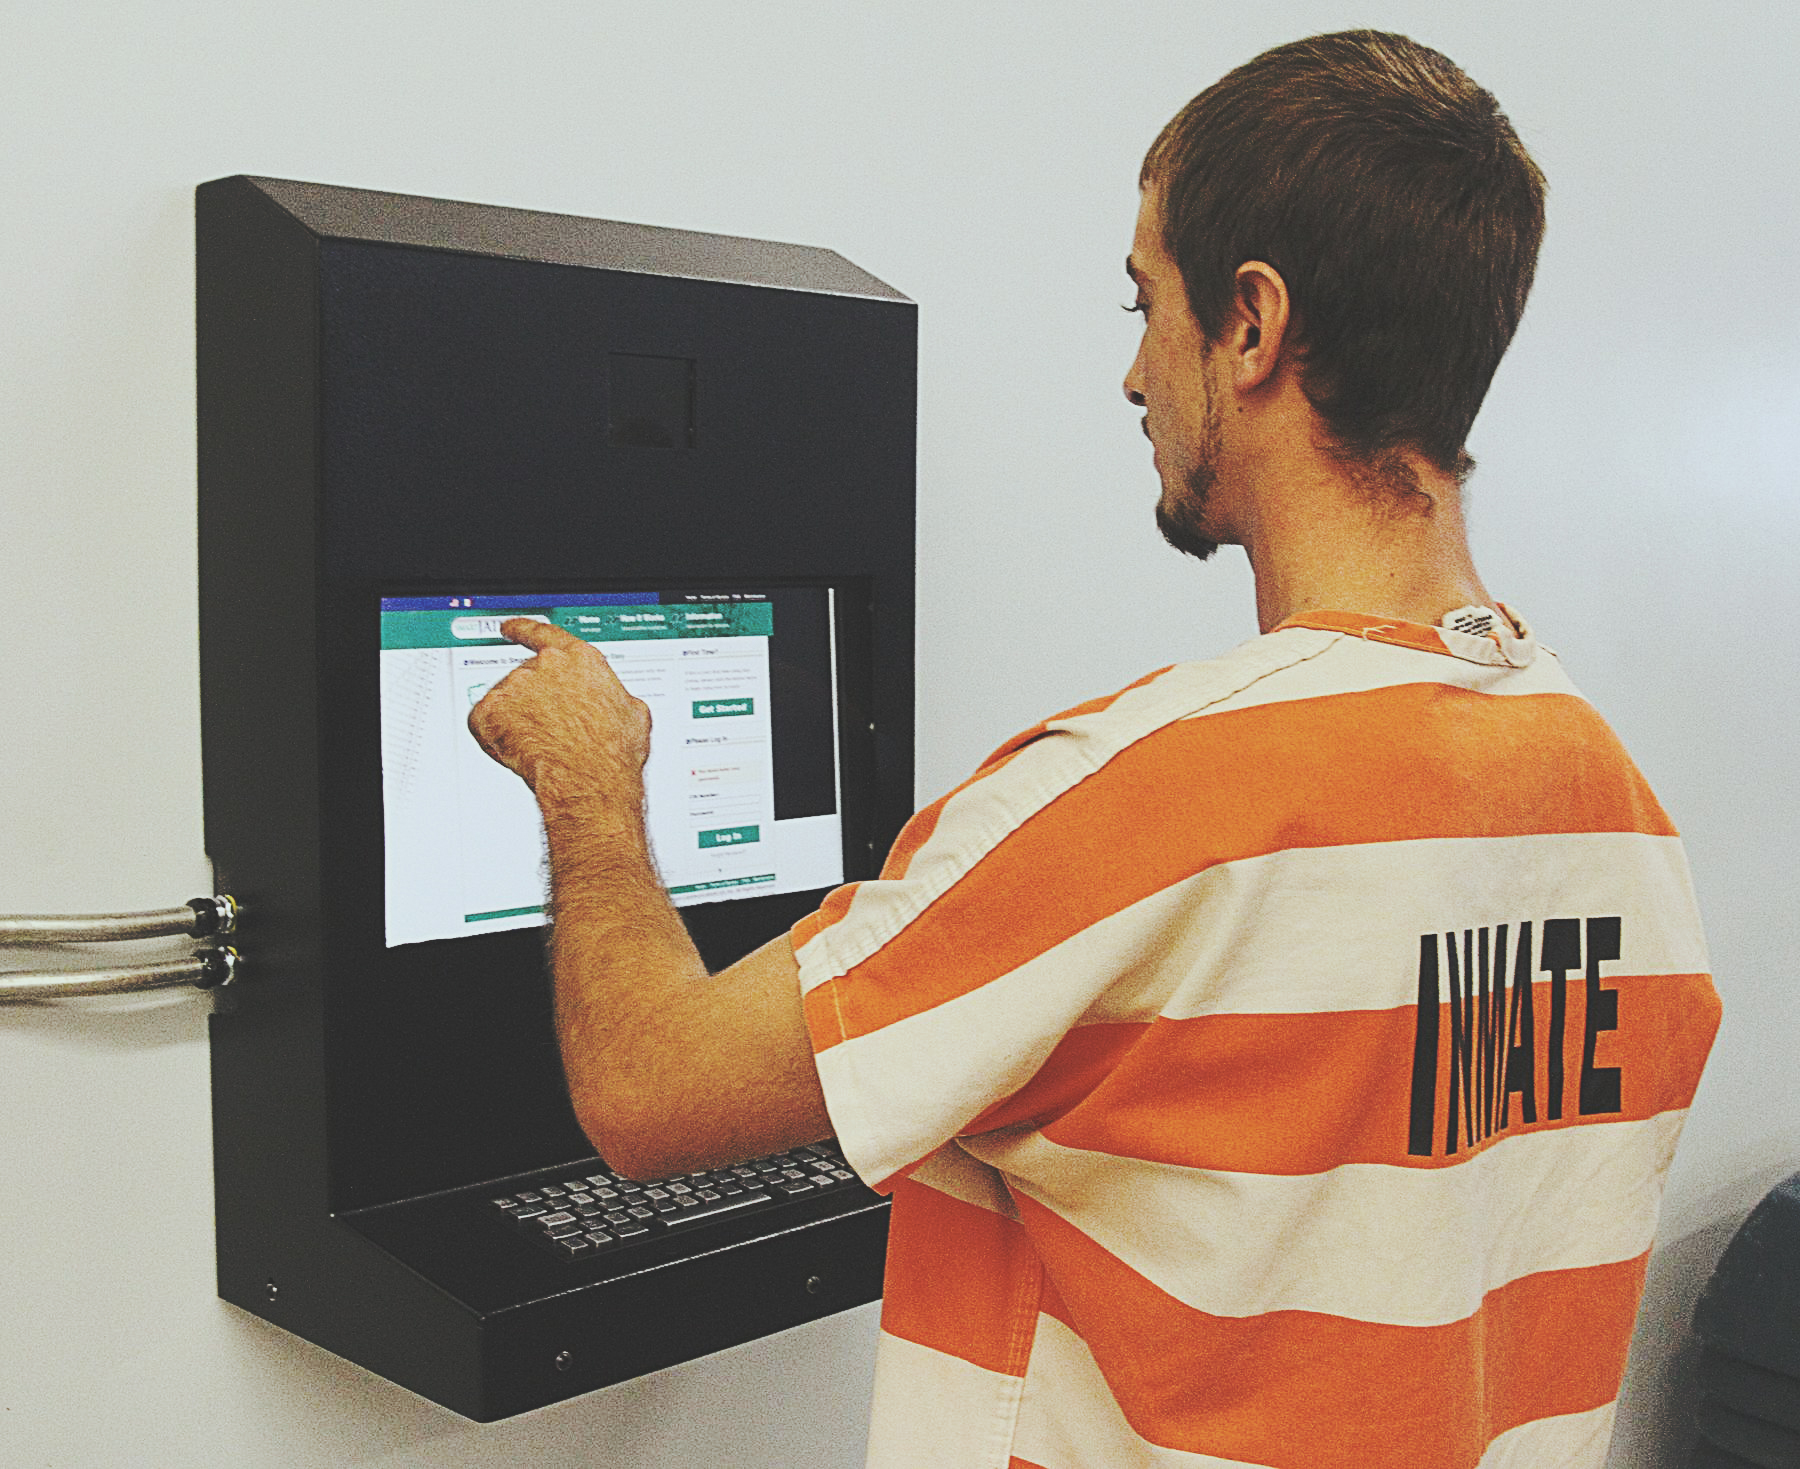 RealtimeCampaign.com Promotes the Benefits of an Inmate Kiosk for Jail Staff